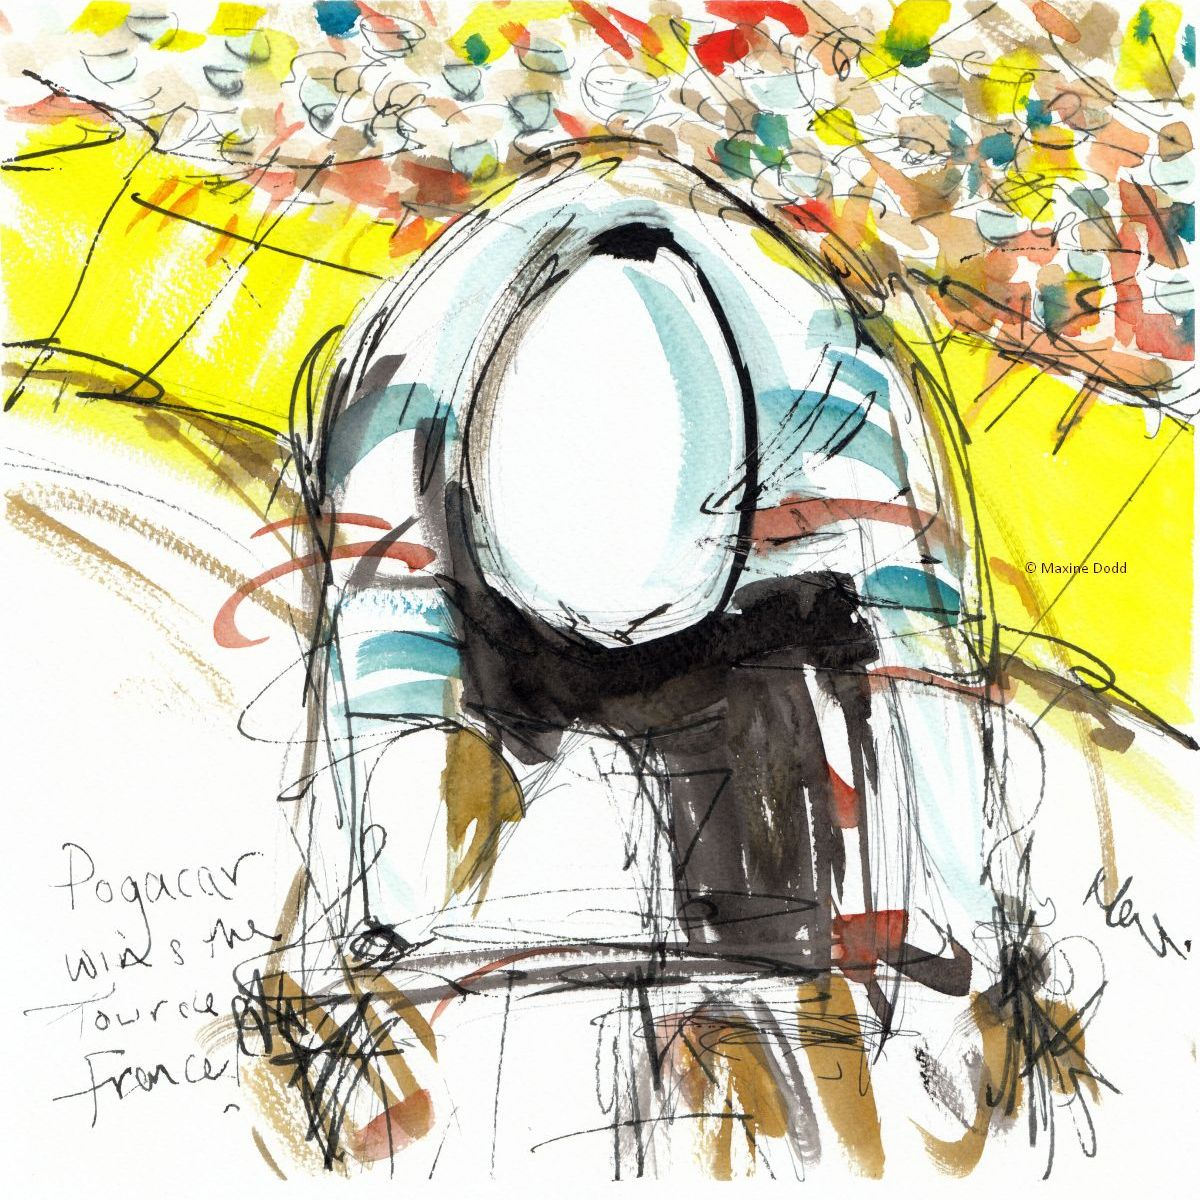 Tadej Pogačar wins the Tour de France! Watercolour, pen and ink by Maxine Dodd